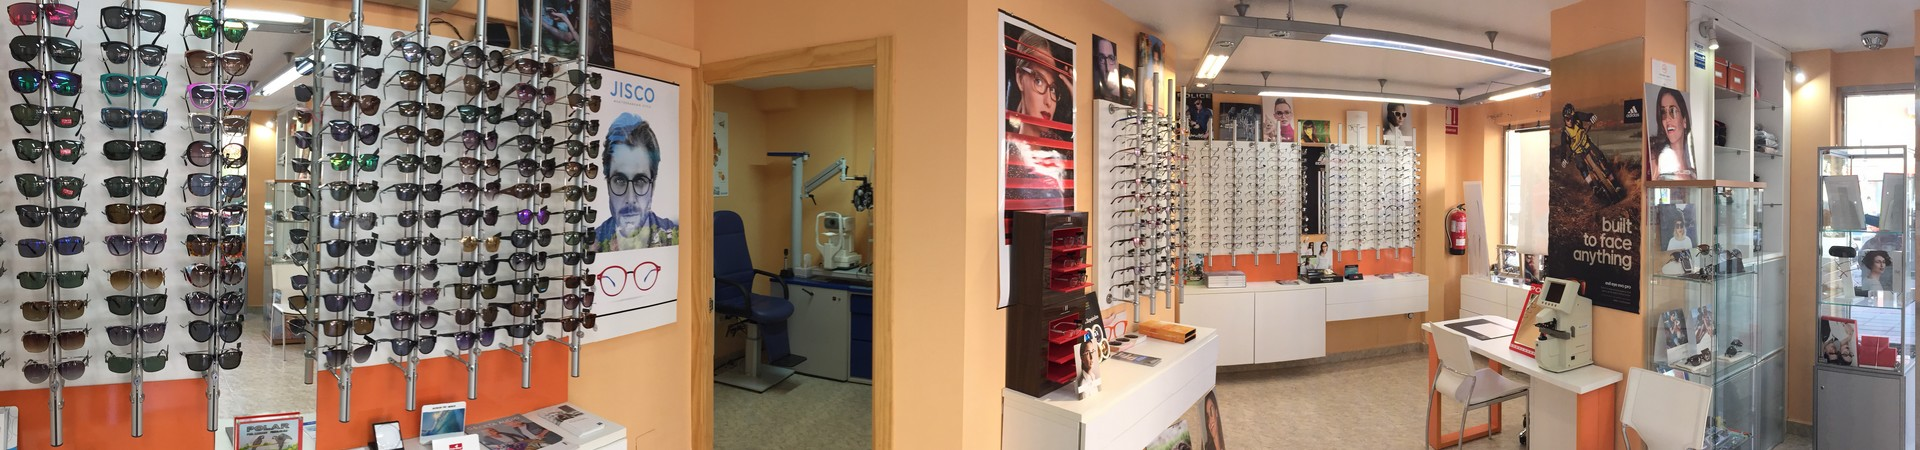 opticas en carchuna, opticas en calahonda, opticos en motril, opticos motril, opticas motril,